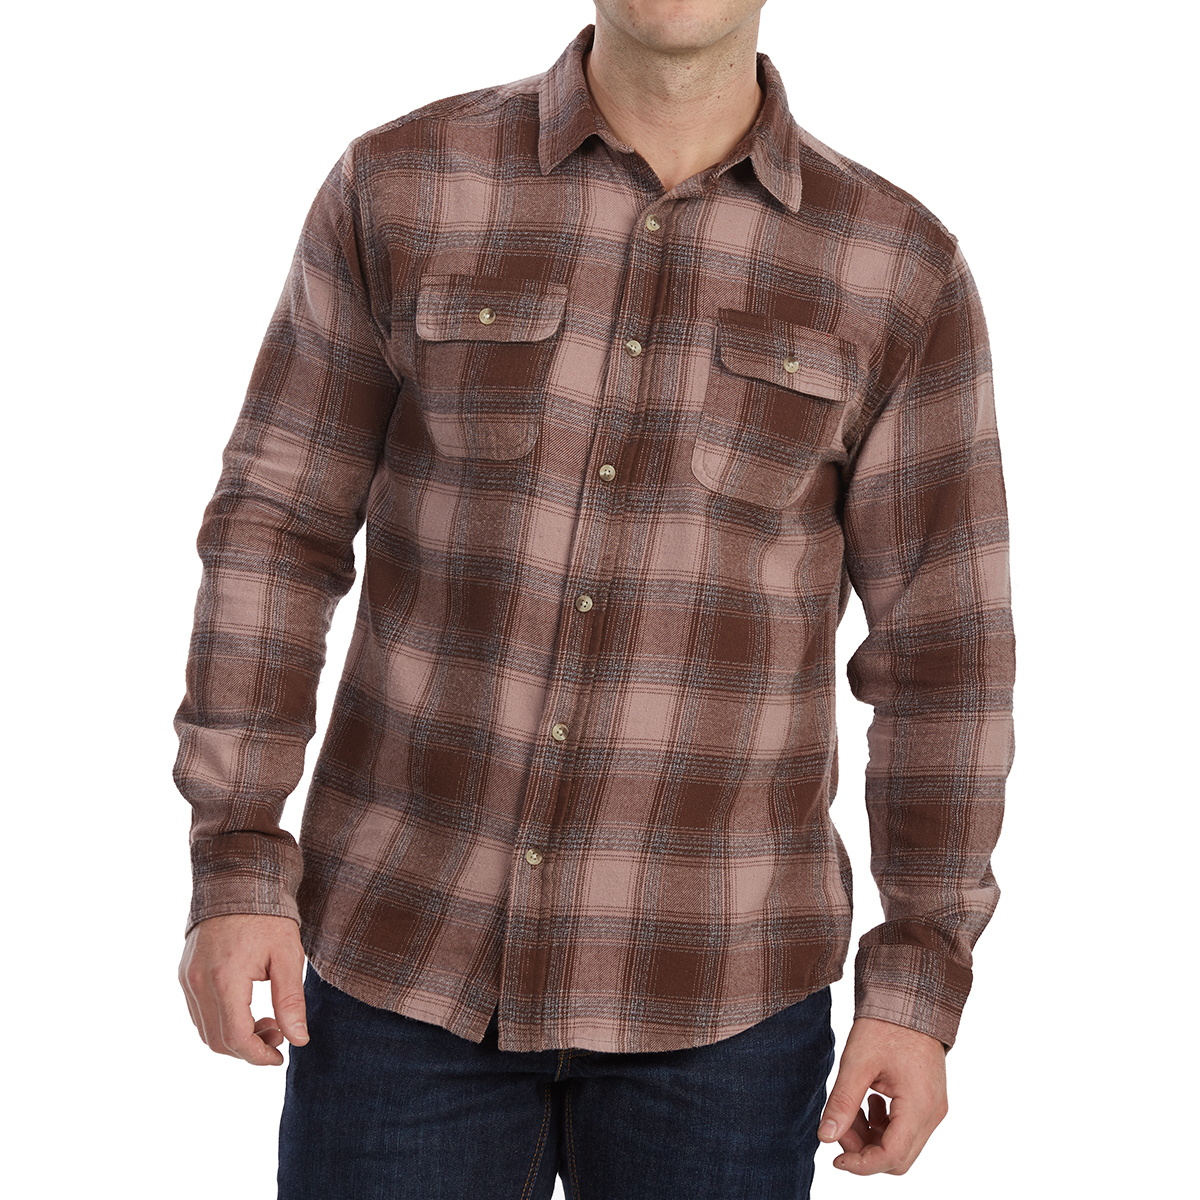 Free Nature Guys' Yarn-Dyed Long-Sleeve Flannel Shirt - Brown, L